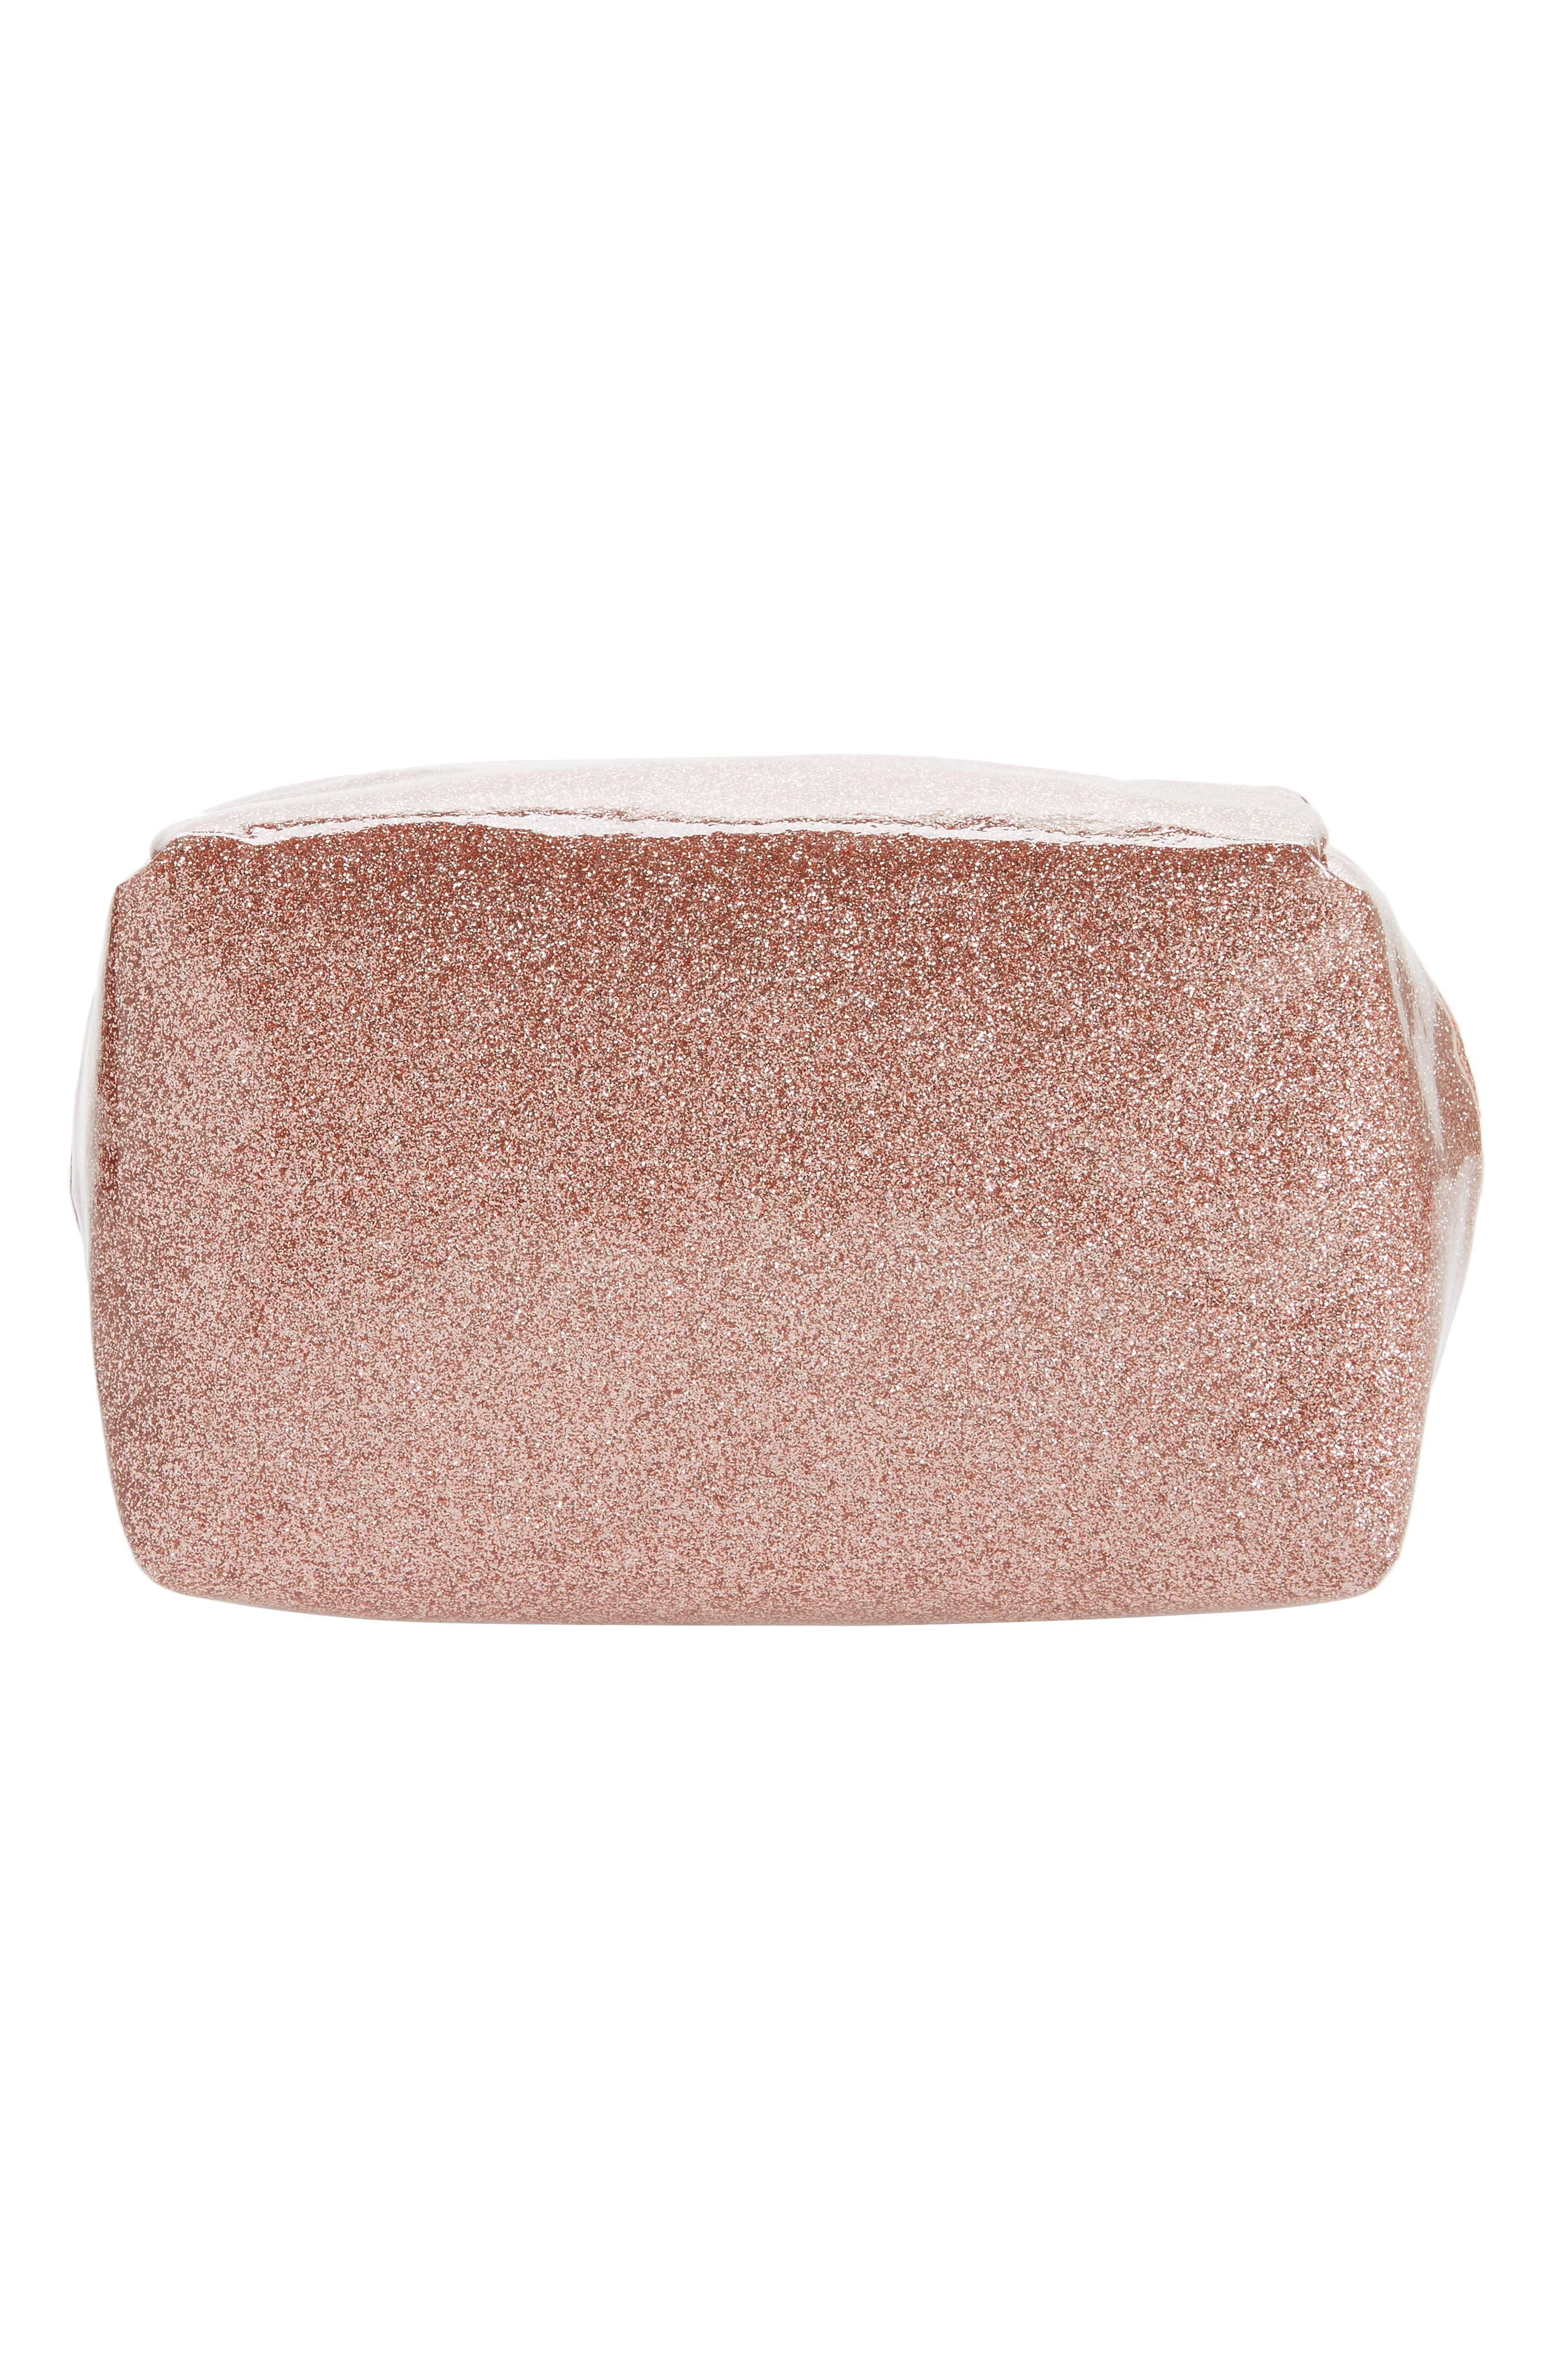 Cosmetics Case,                             Alternate thumbnail 5, color,                             ROSE GOLD